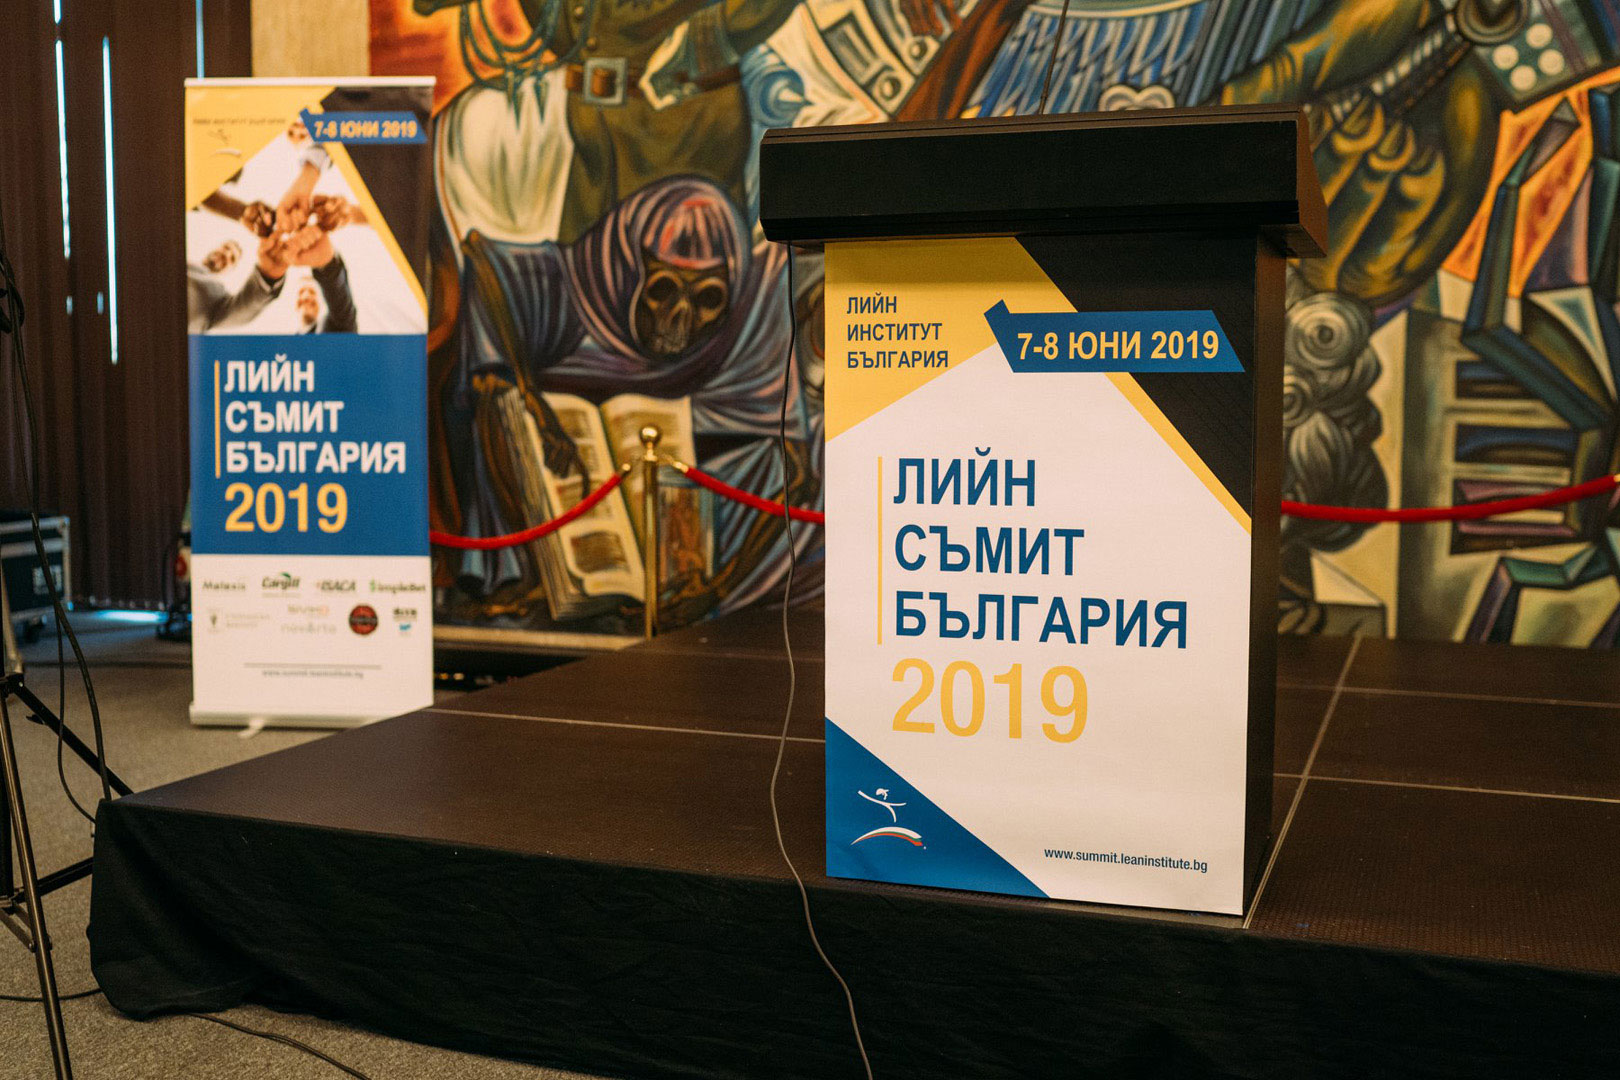 Lean Summit Bulgaria 2019 image 3